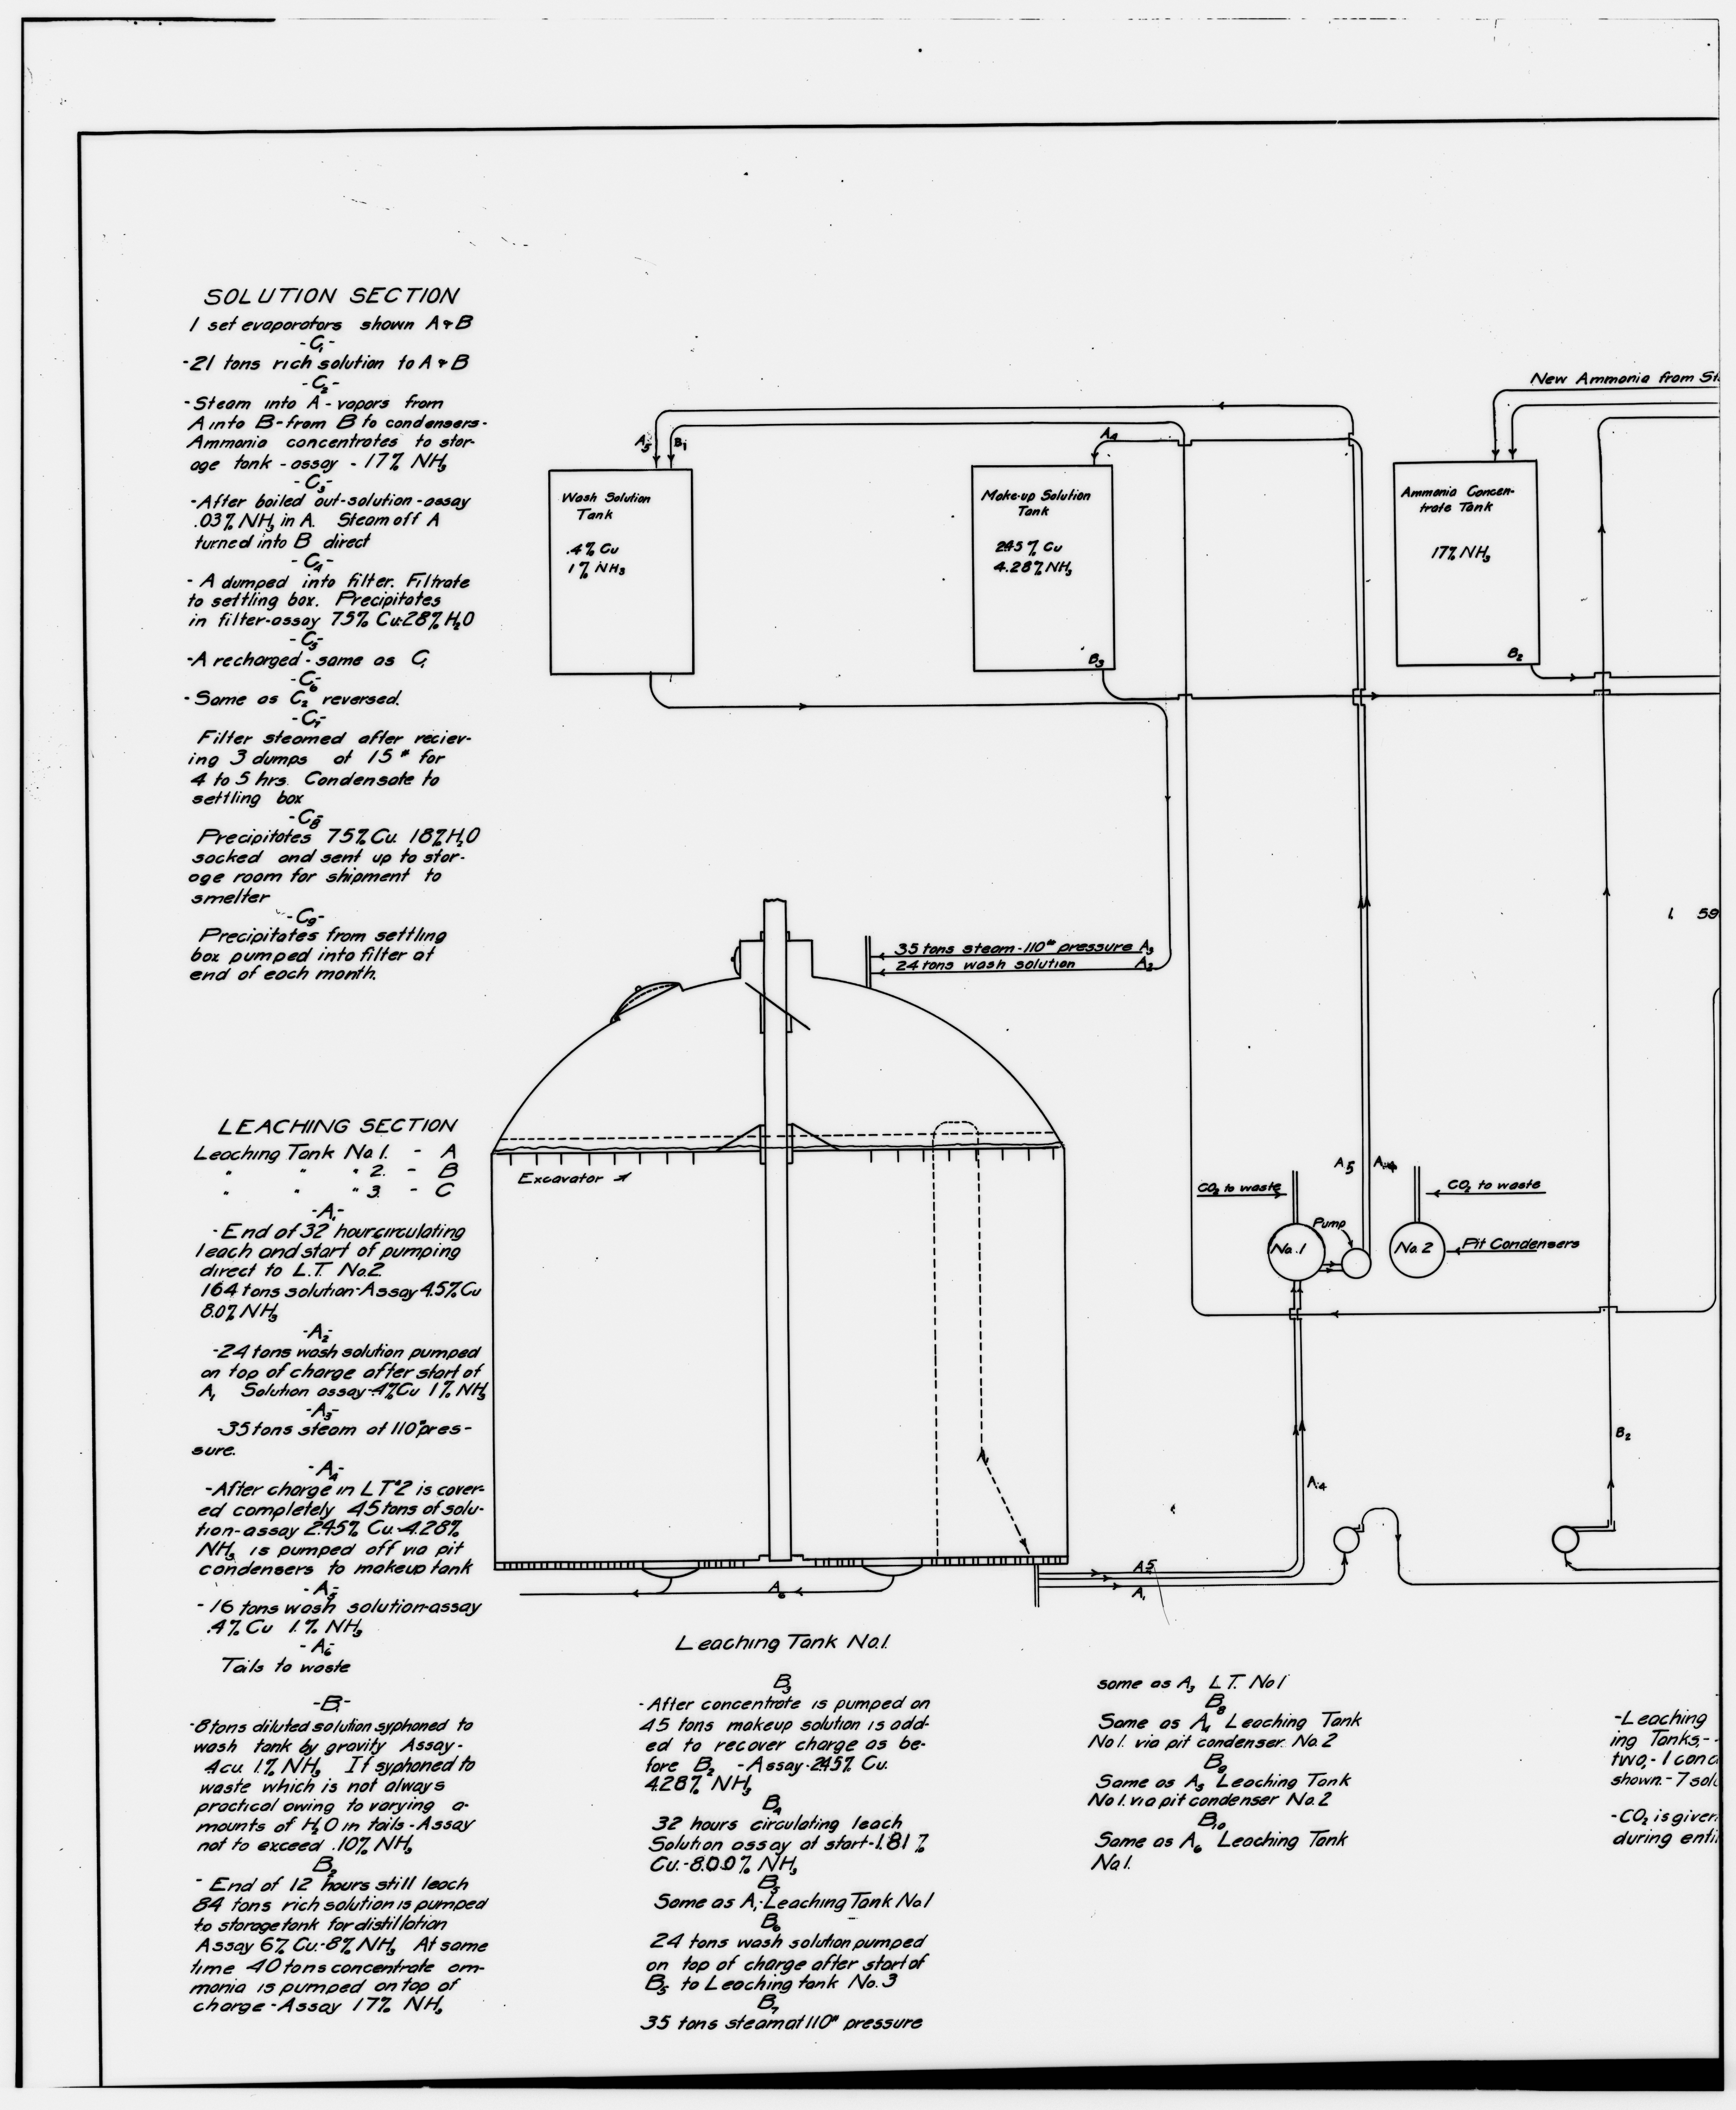 File 53 Photocopy Of Drawing Ammonia Leaching Plant Flow Diagram Representing One Complete